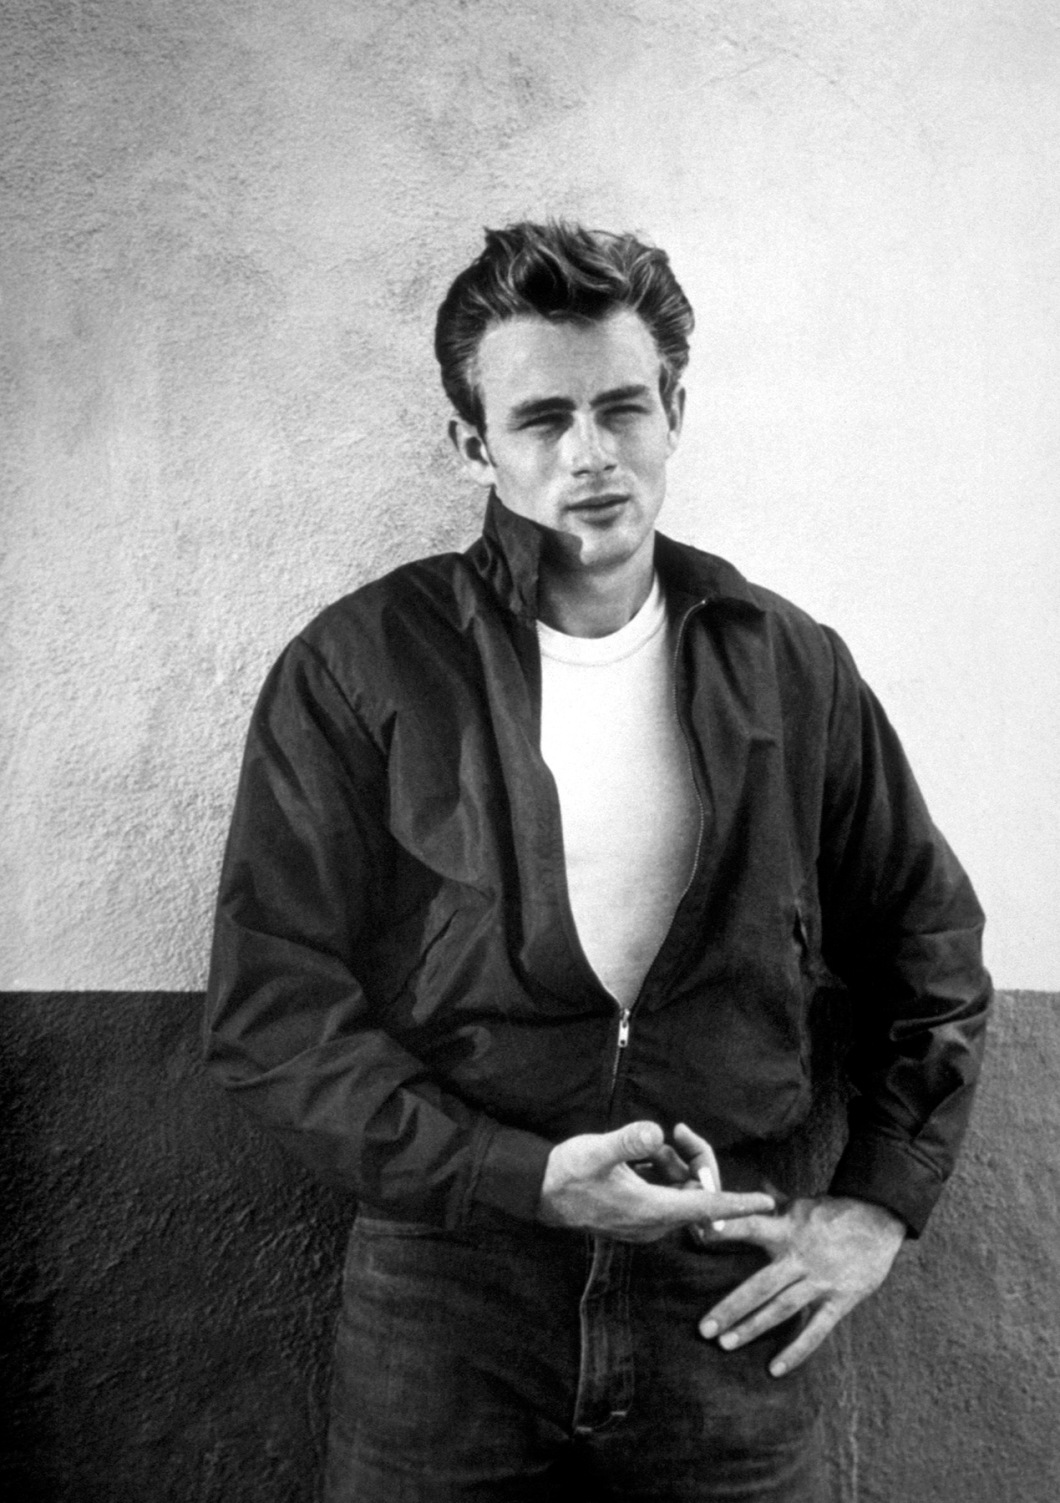 James Dean (1955 Rebel Without a Cause)_02